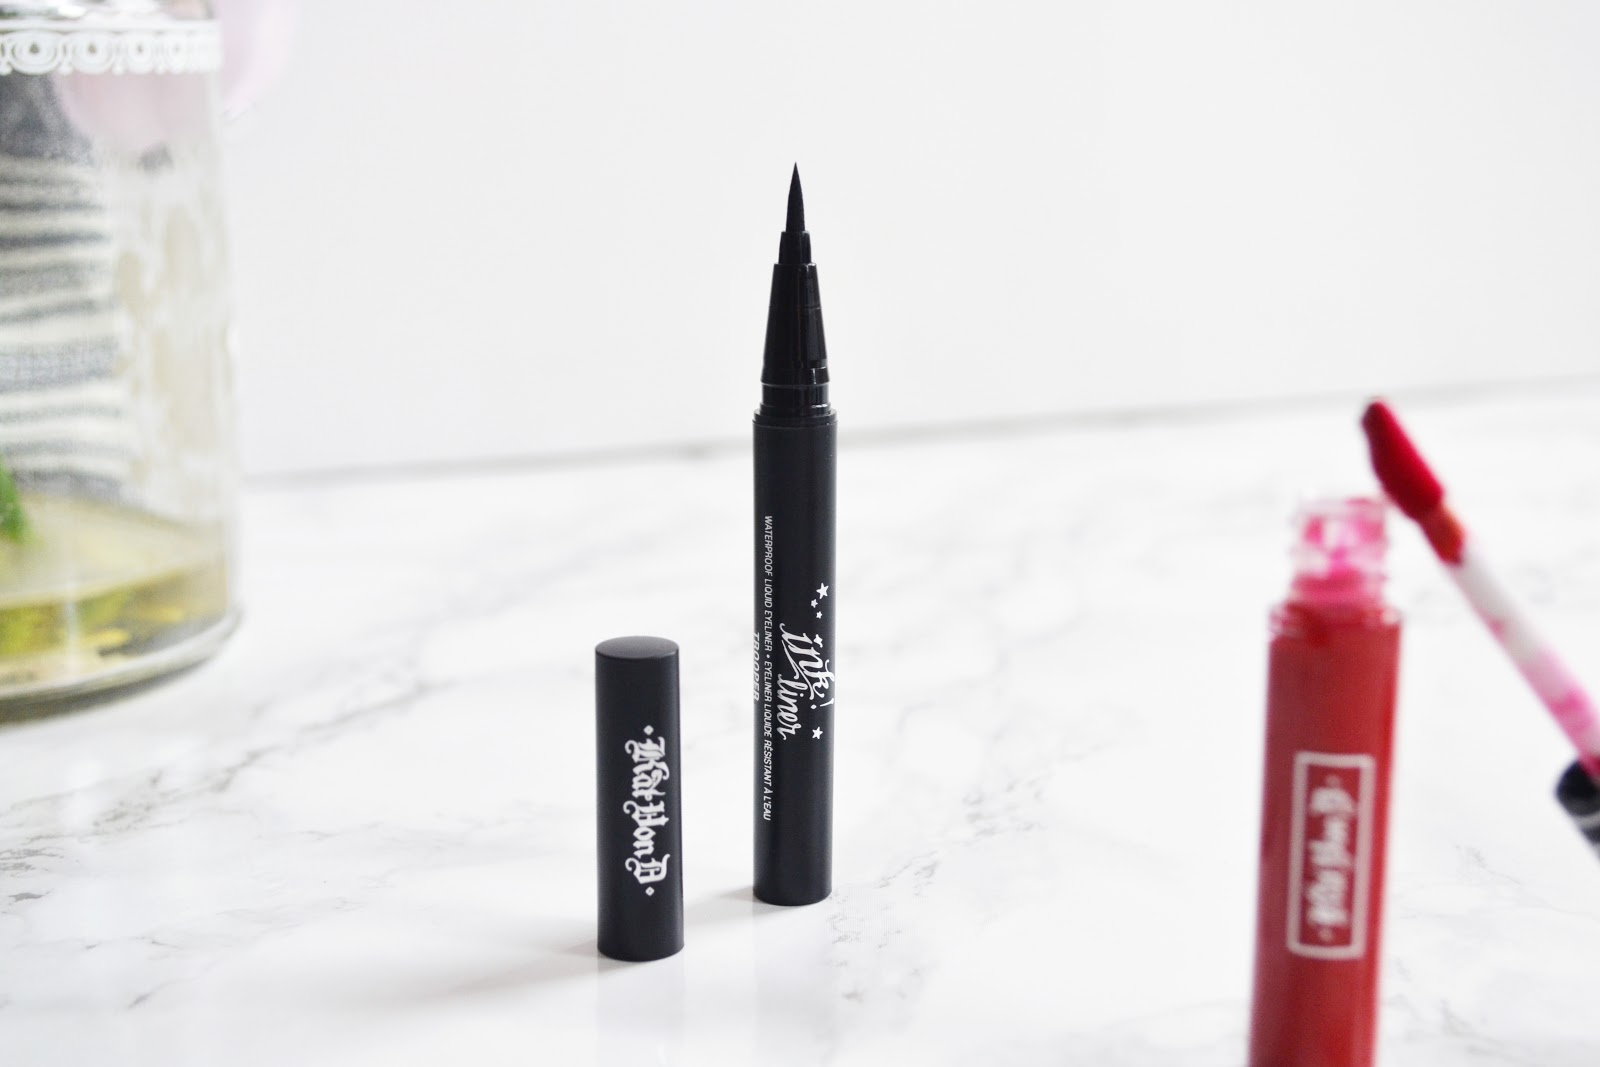 Kat Von D Beauty Ink Liner